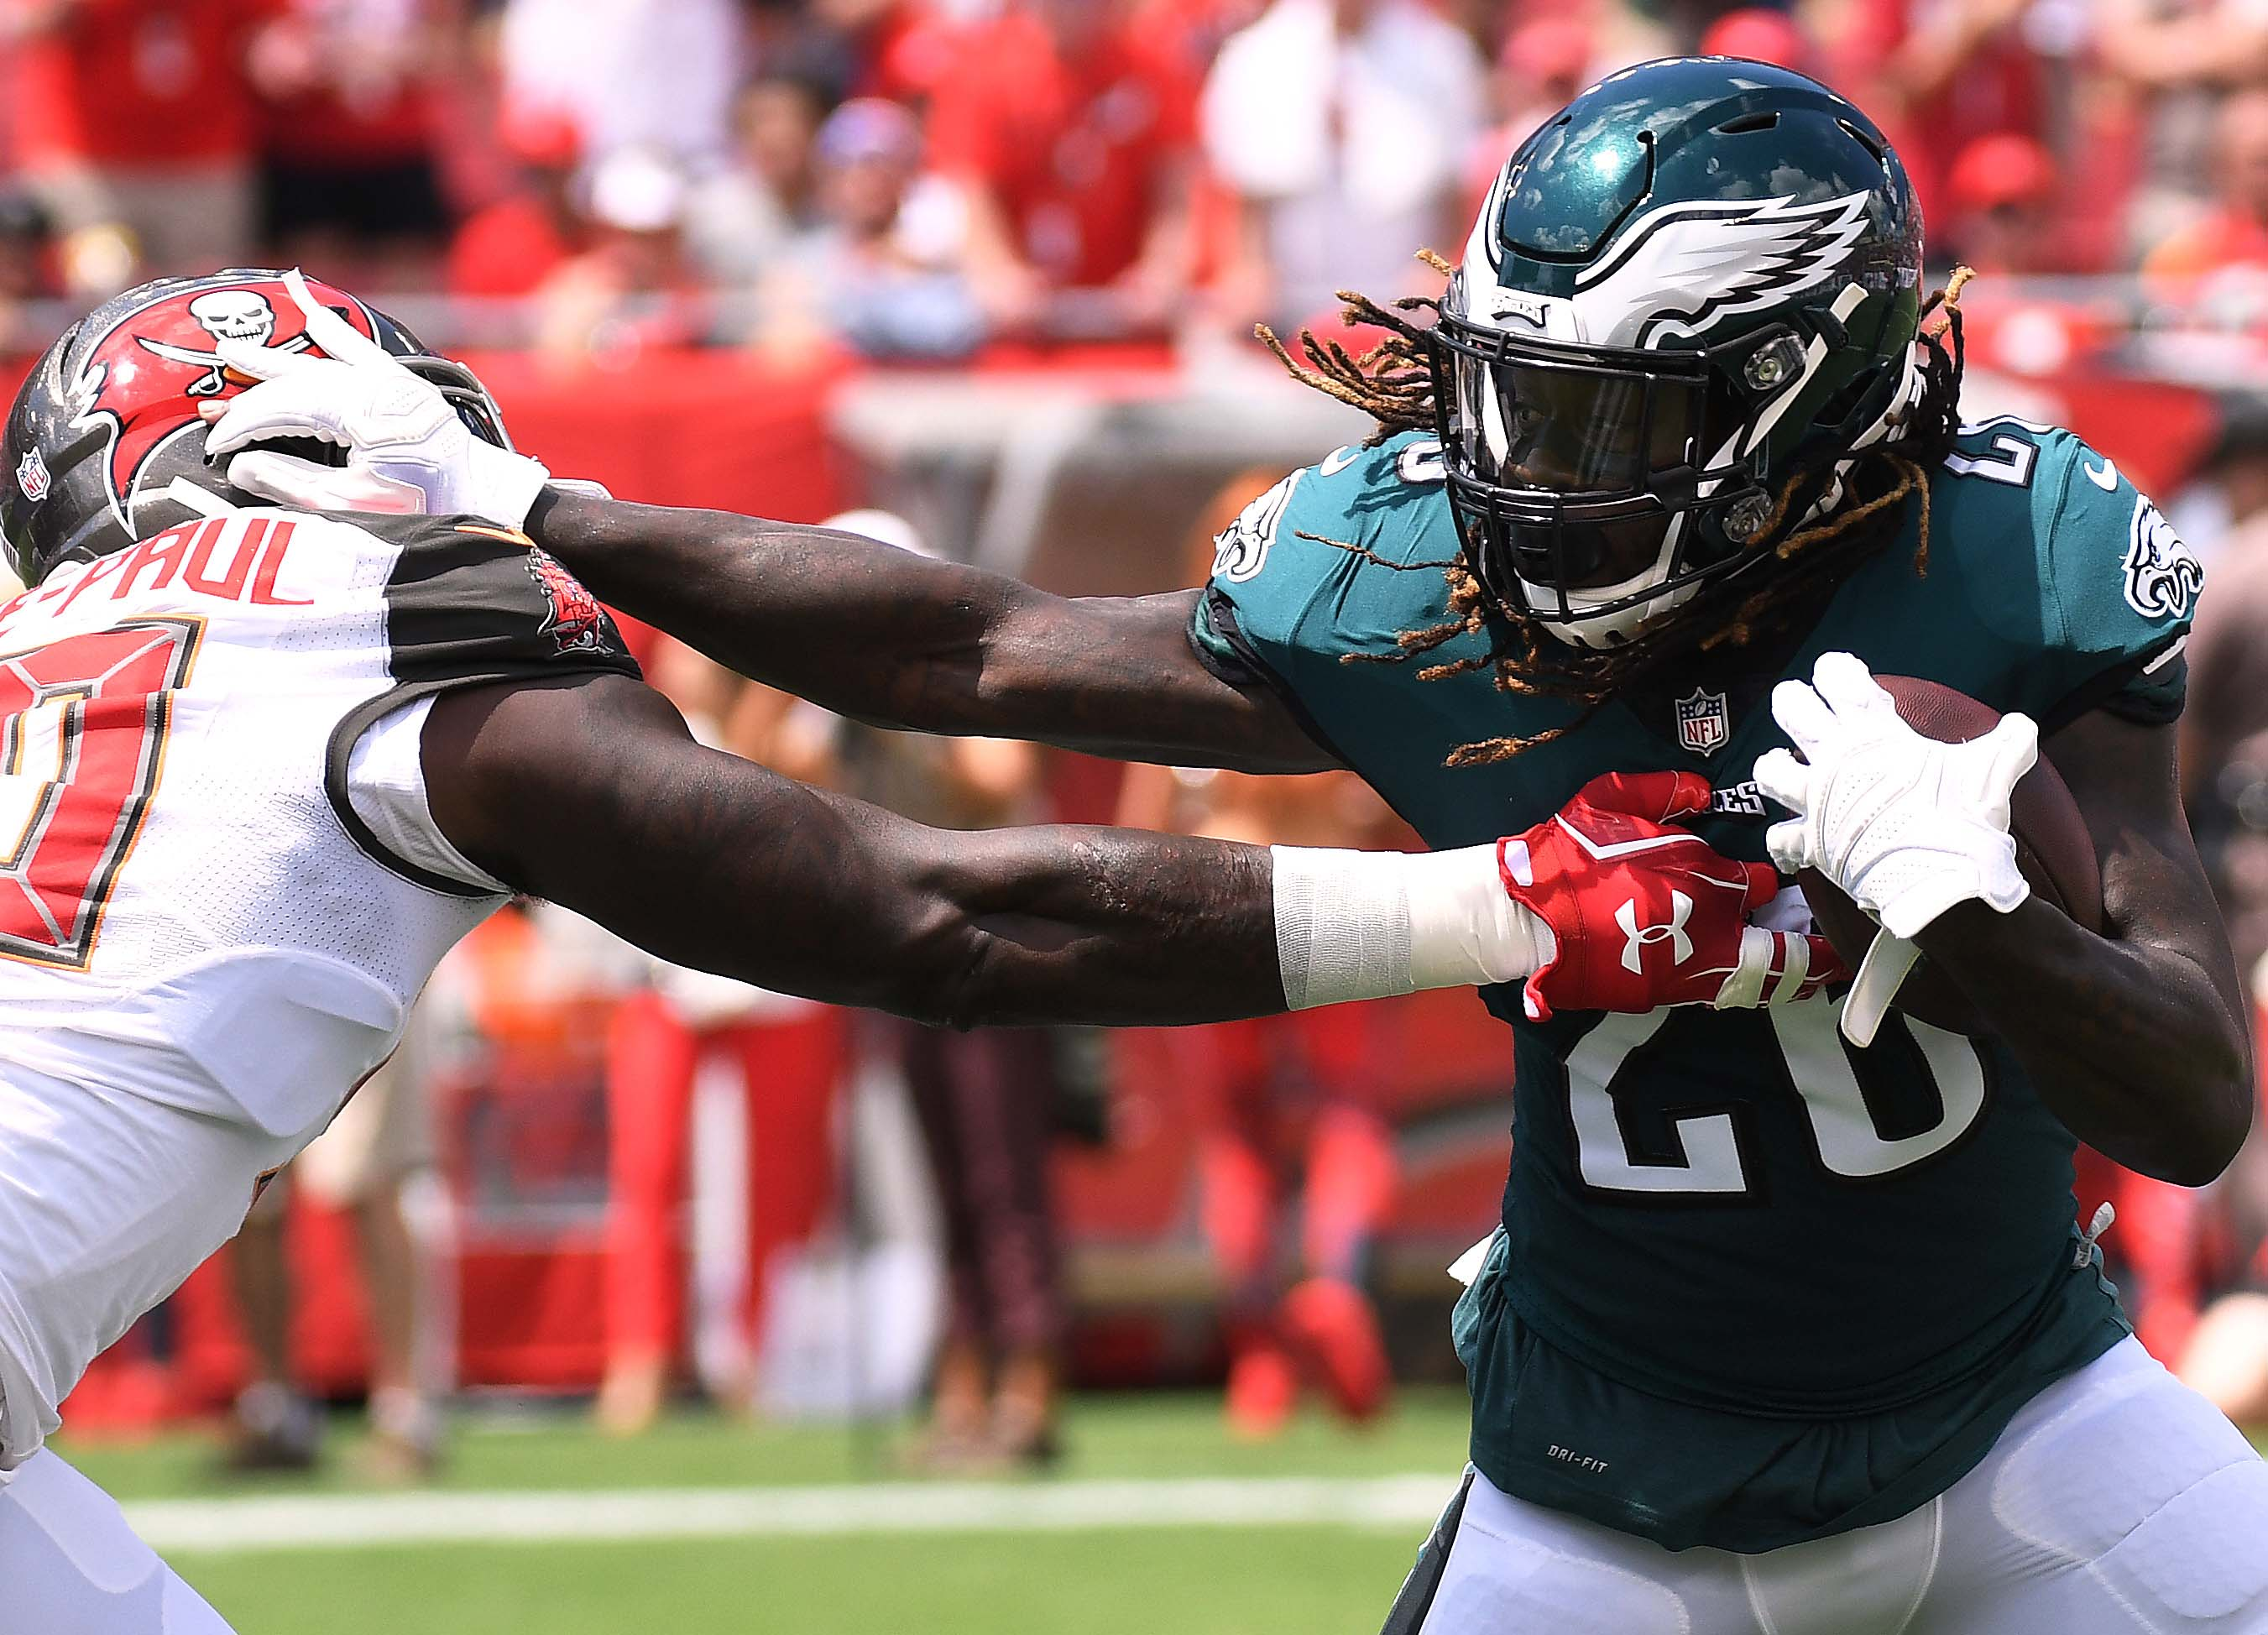 Eagles RB Jay Ajayi to miss remainder of season with torn ACL